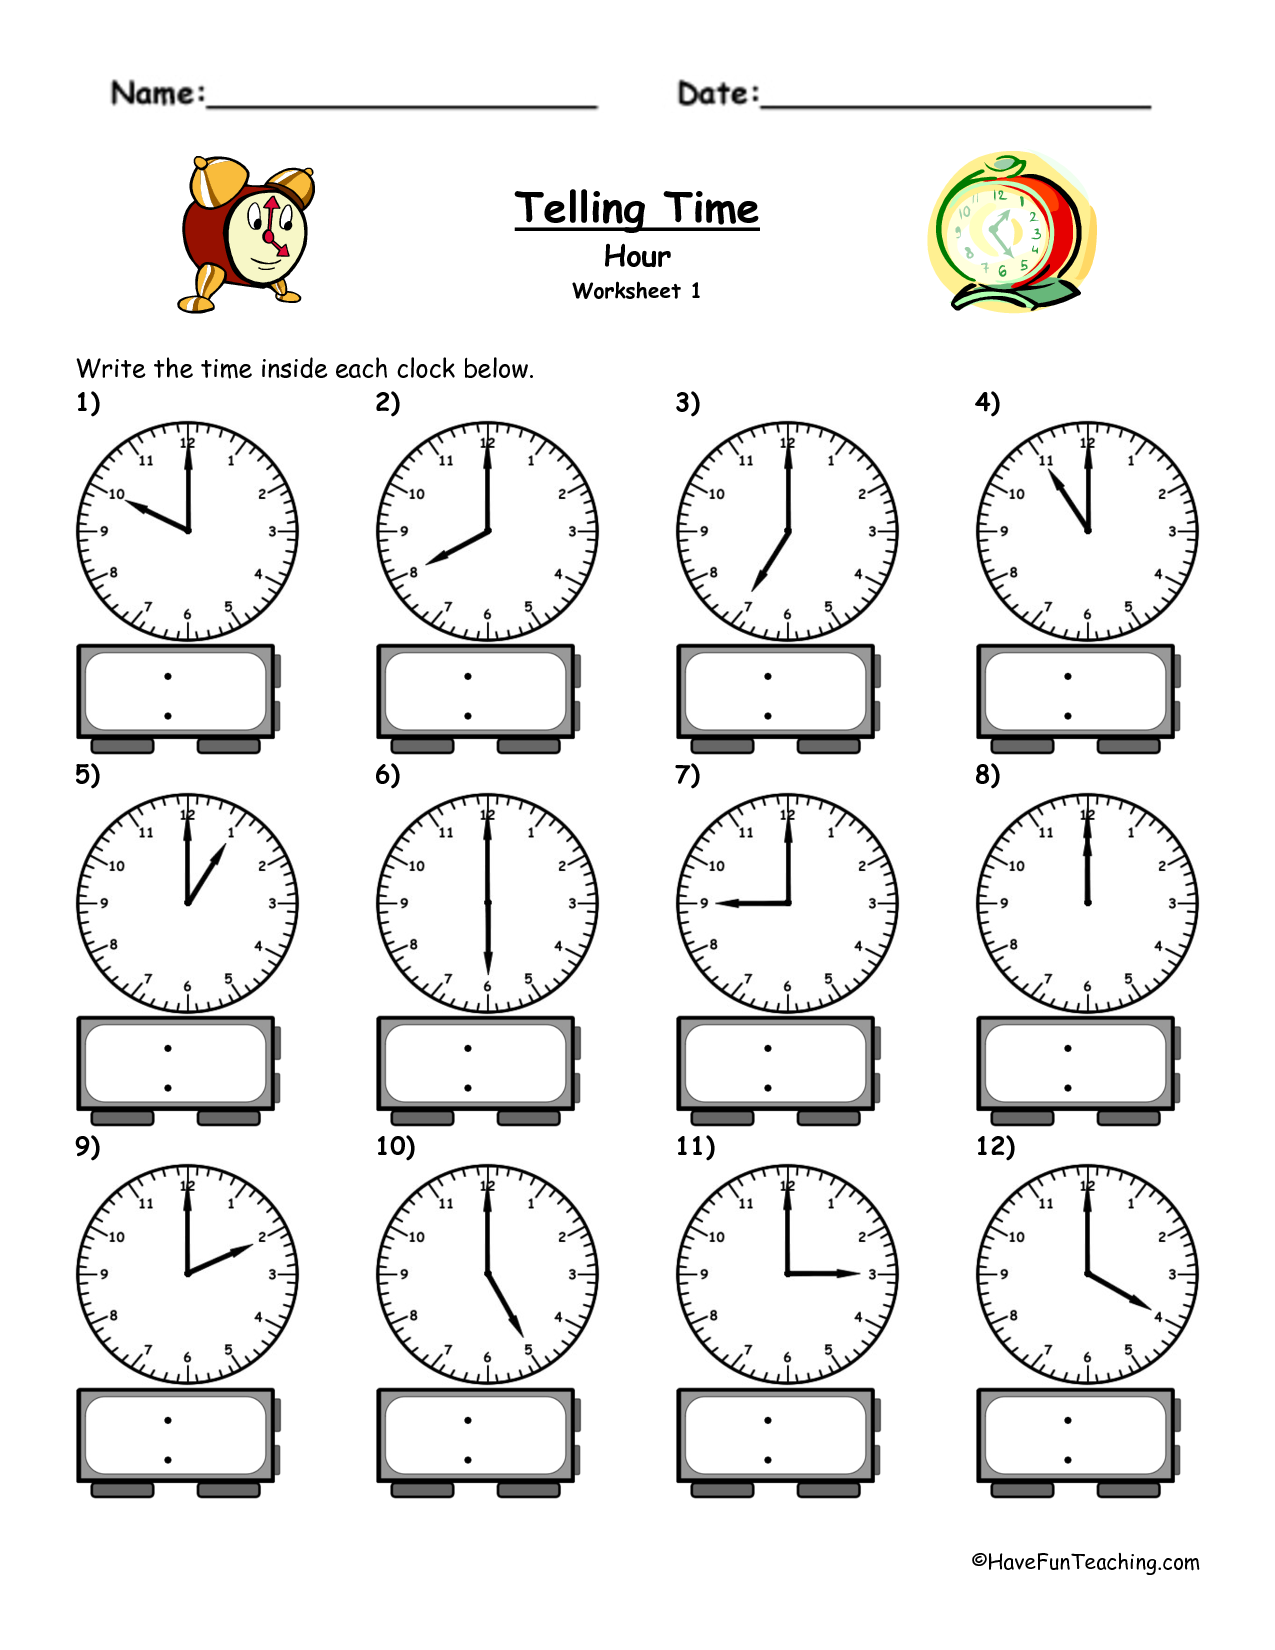 Worksheets How To Tell Time Worksheets time worksheets telling favorite recipes worksheets